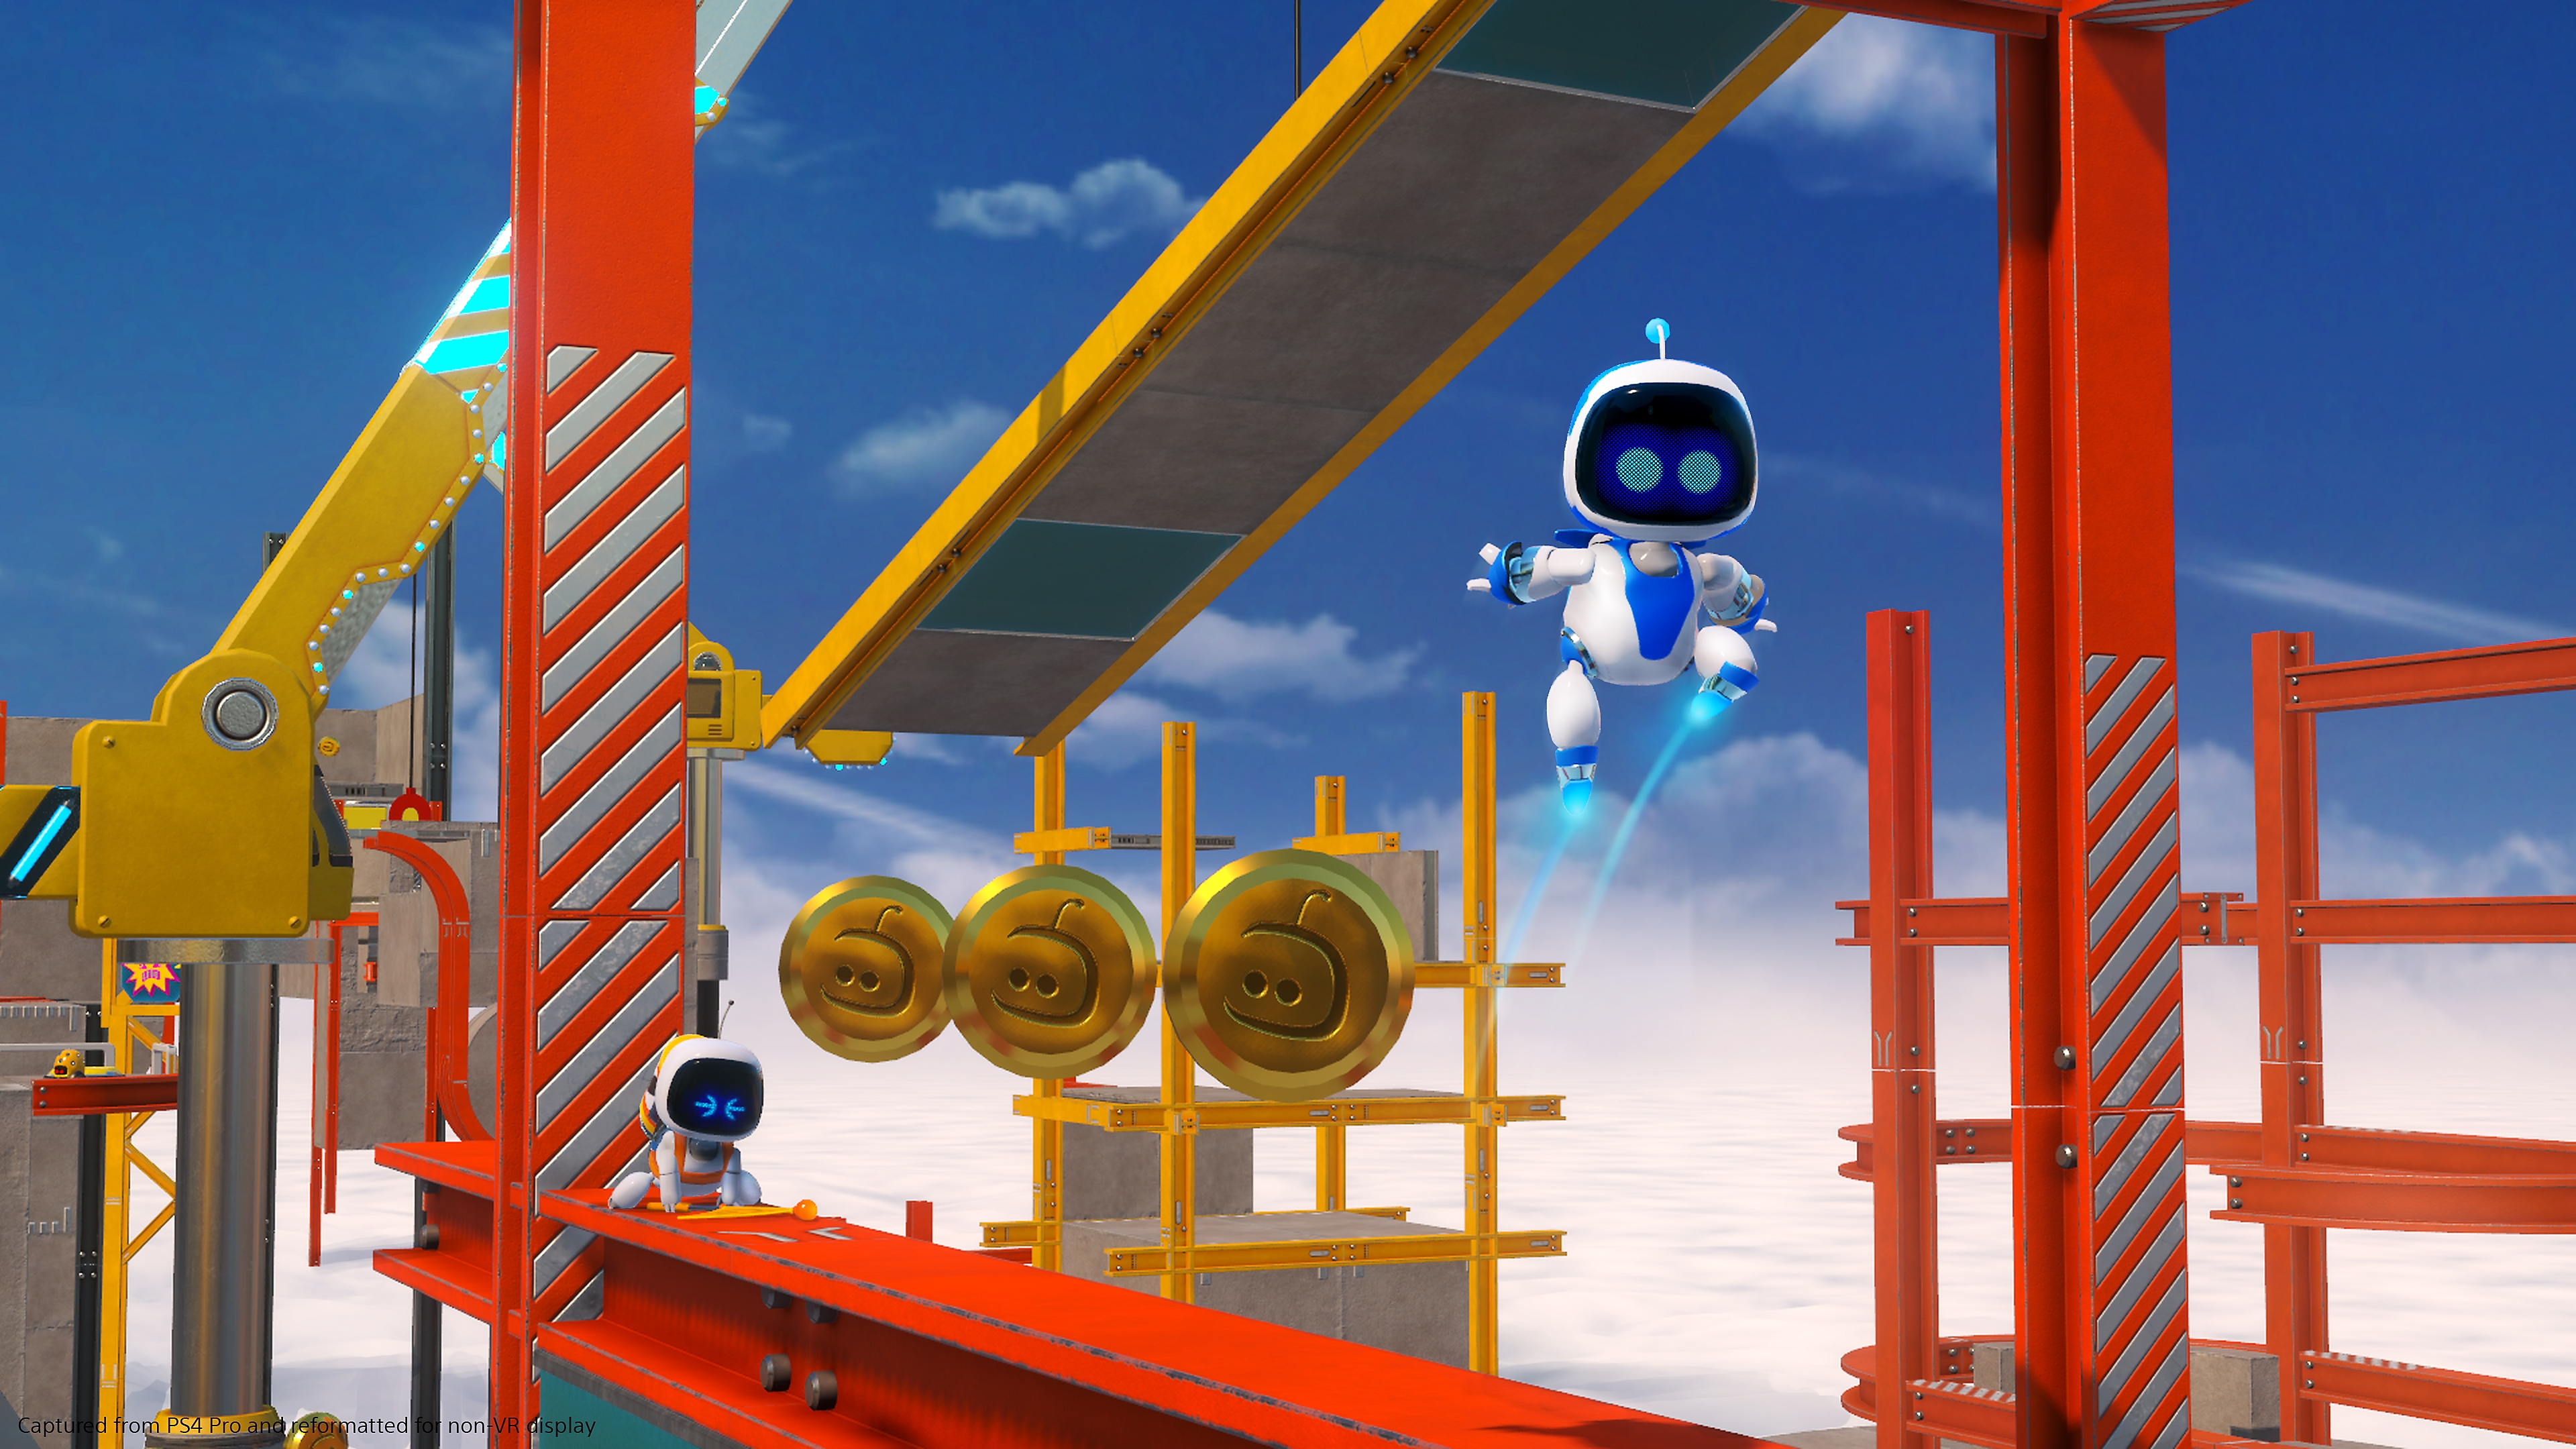 Astro bot rescue mission screenshot 4